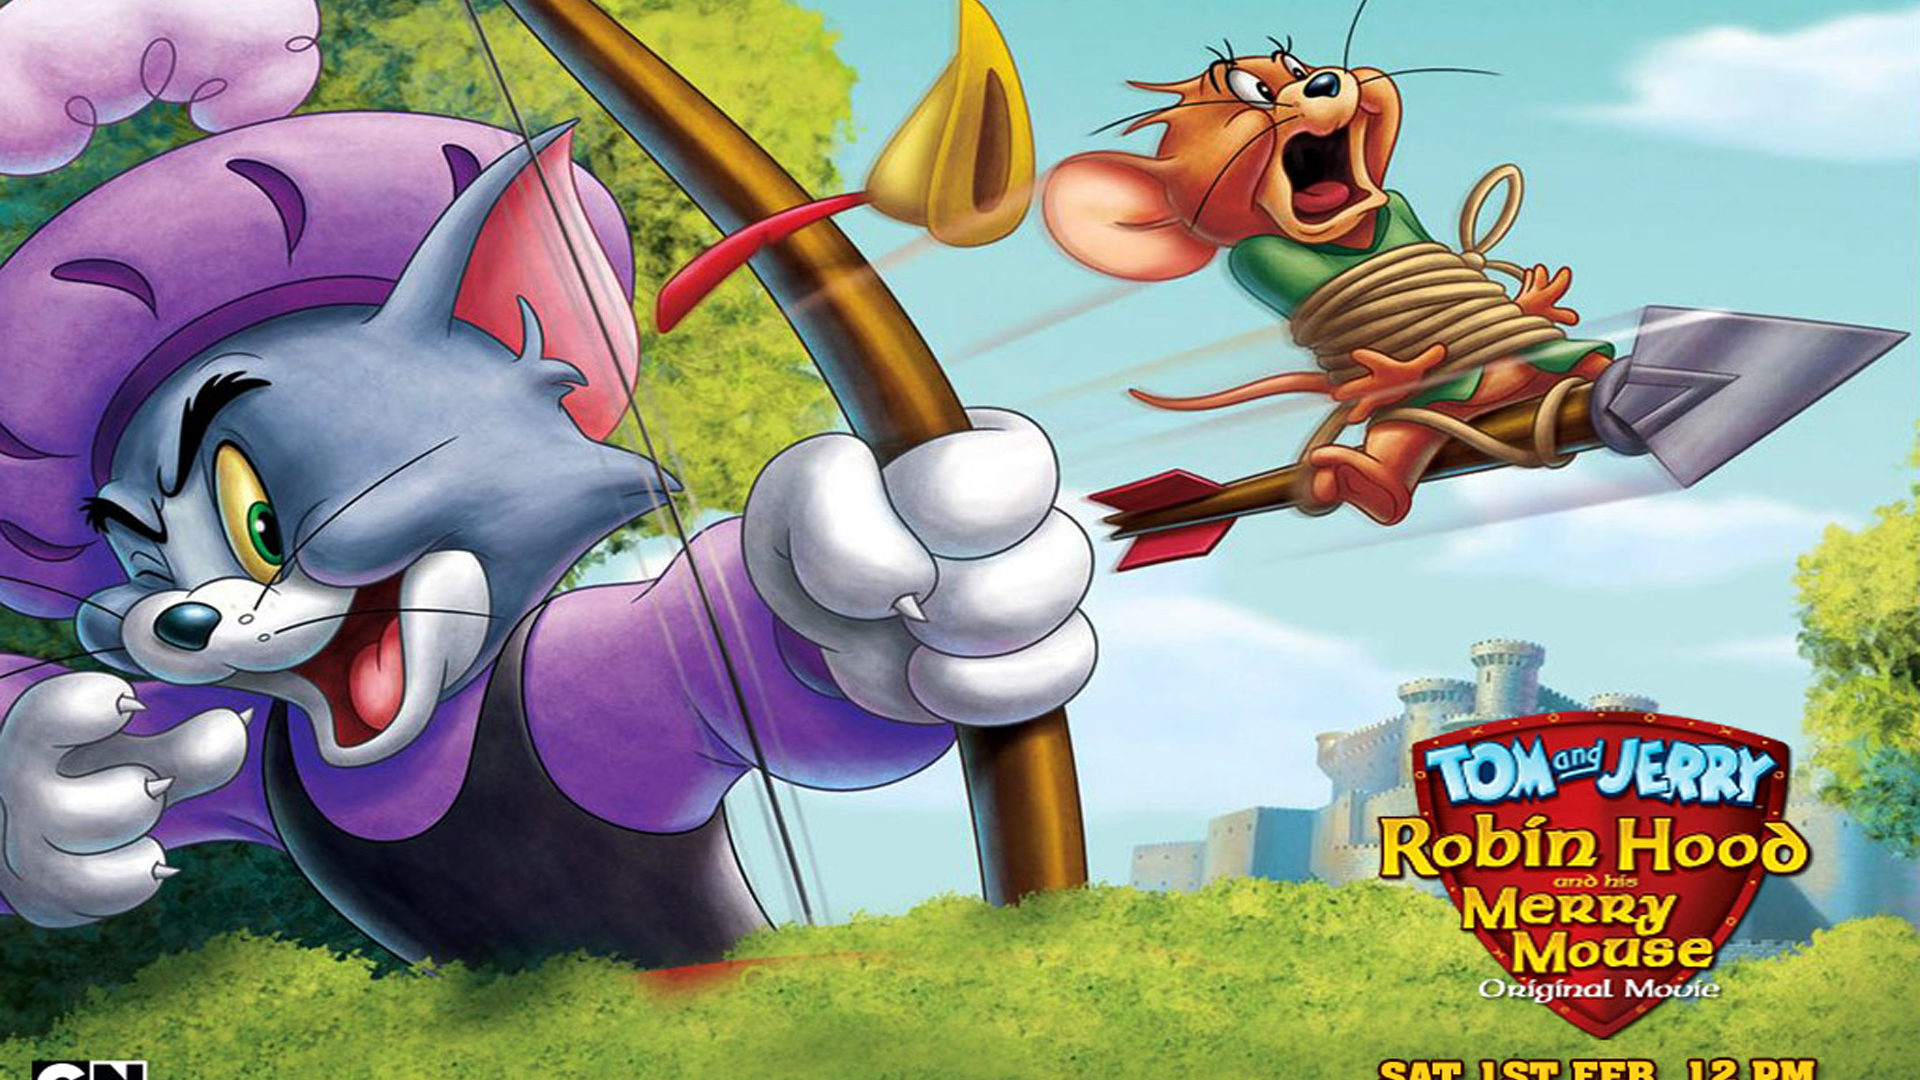 Free Cute Cartoon Wallpapers Ctom And Jerry Robin Hood Cartoon Bow And Arrow Video Game